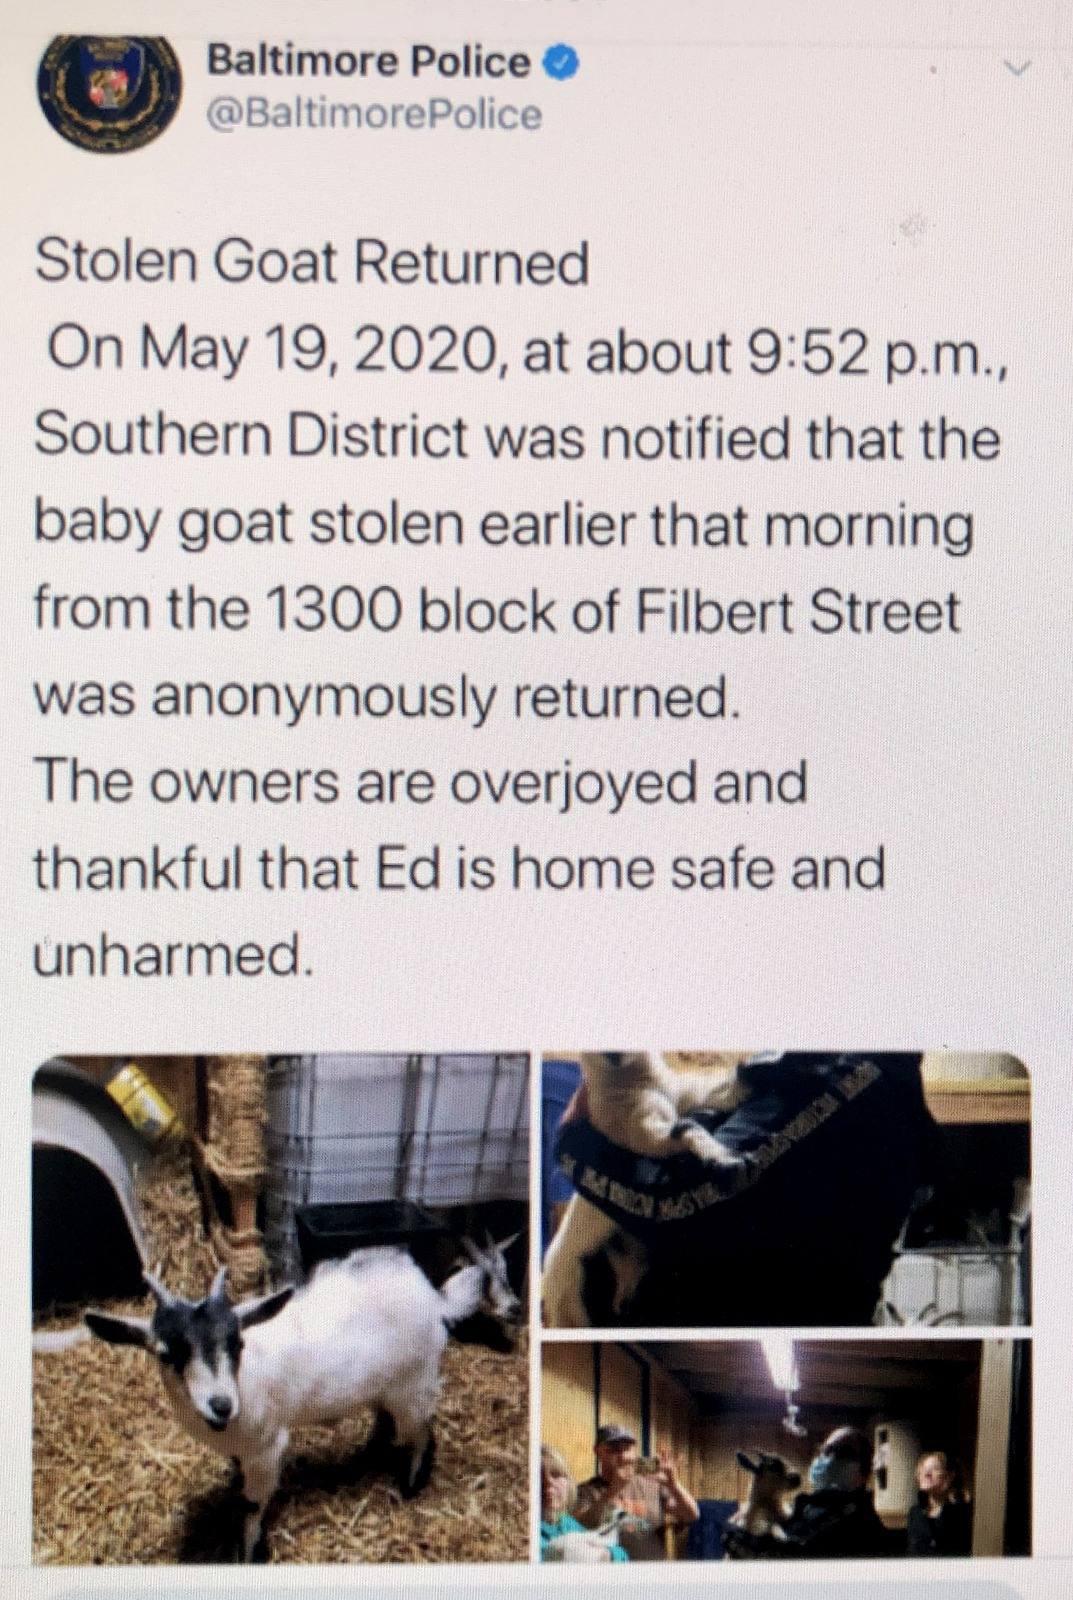 Baltimore Police announce on Twitter they cracked the case of the purloined goat. (@BaltimorePolice)